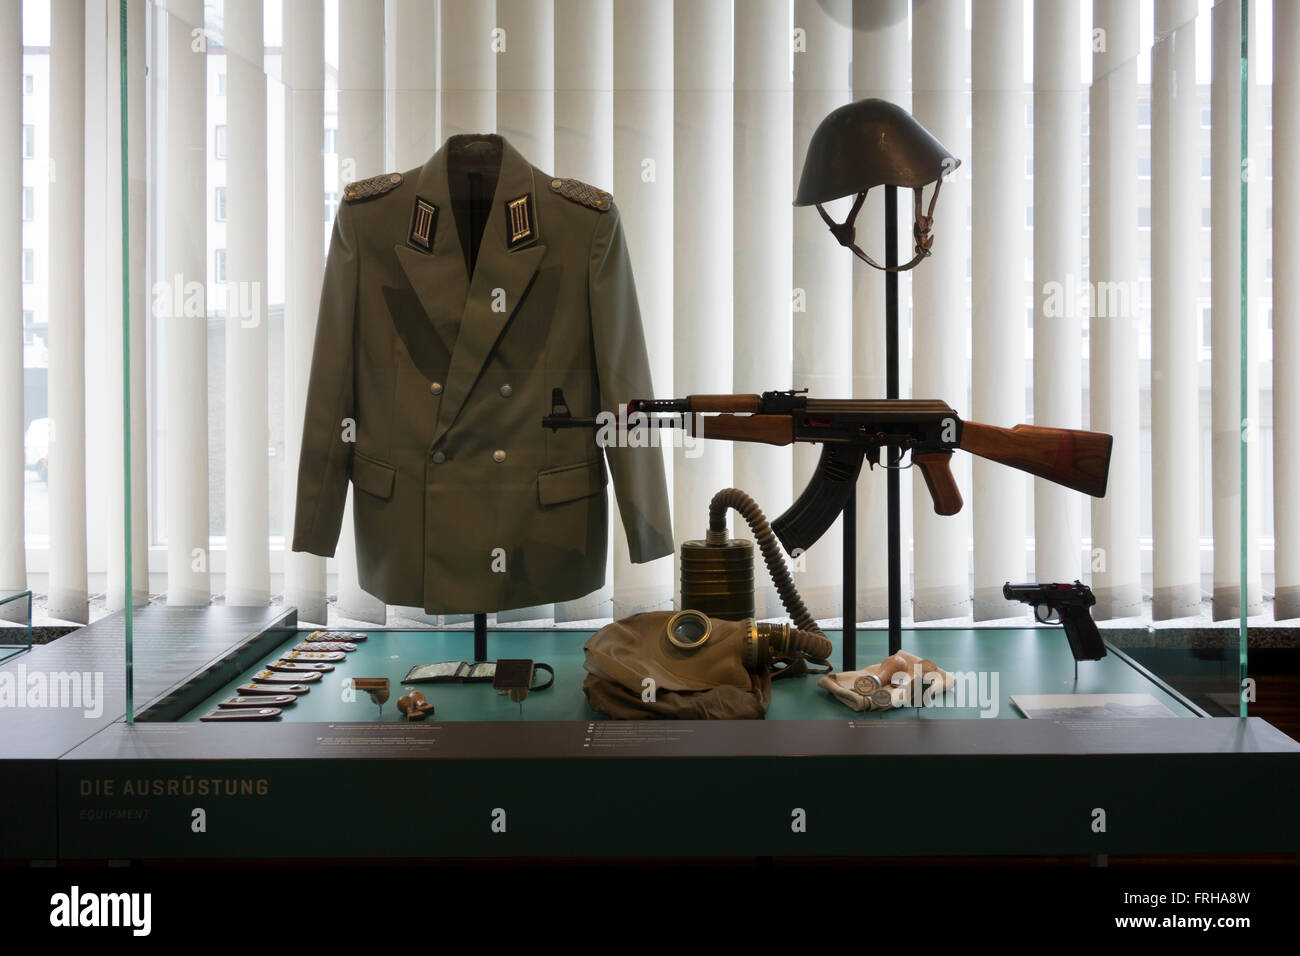 Weapons and uniforms at Stasi Museum, Berlin - Stock Image